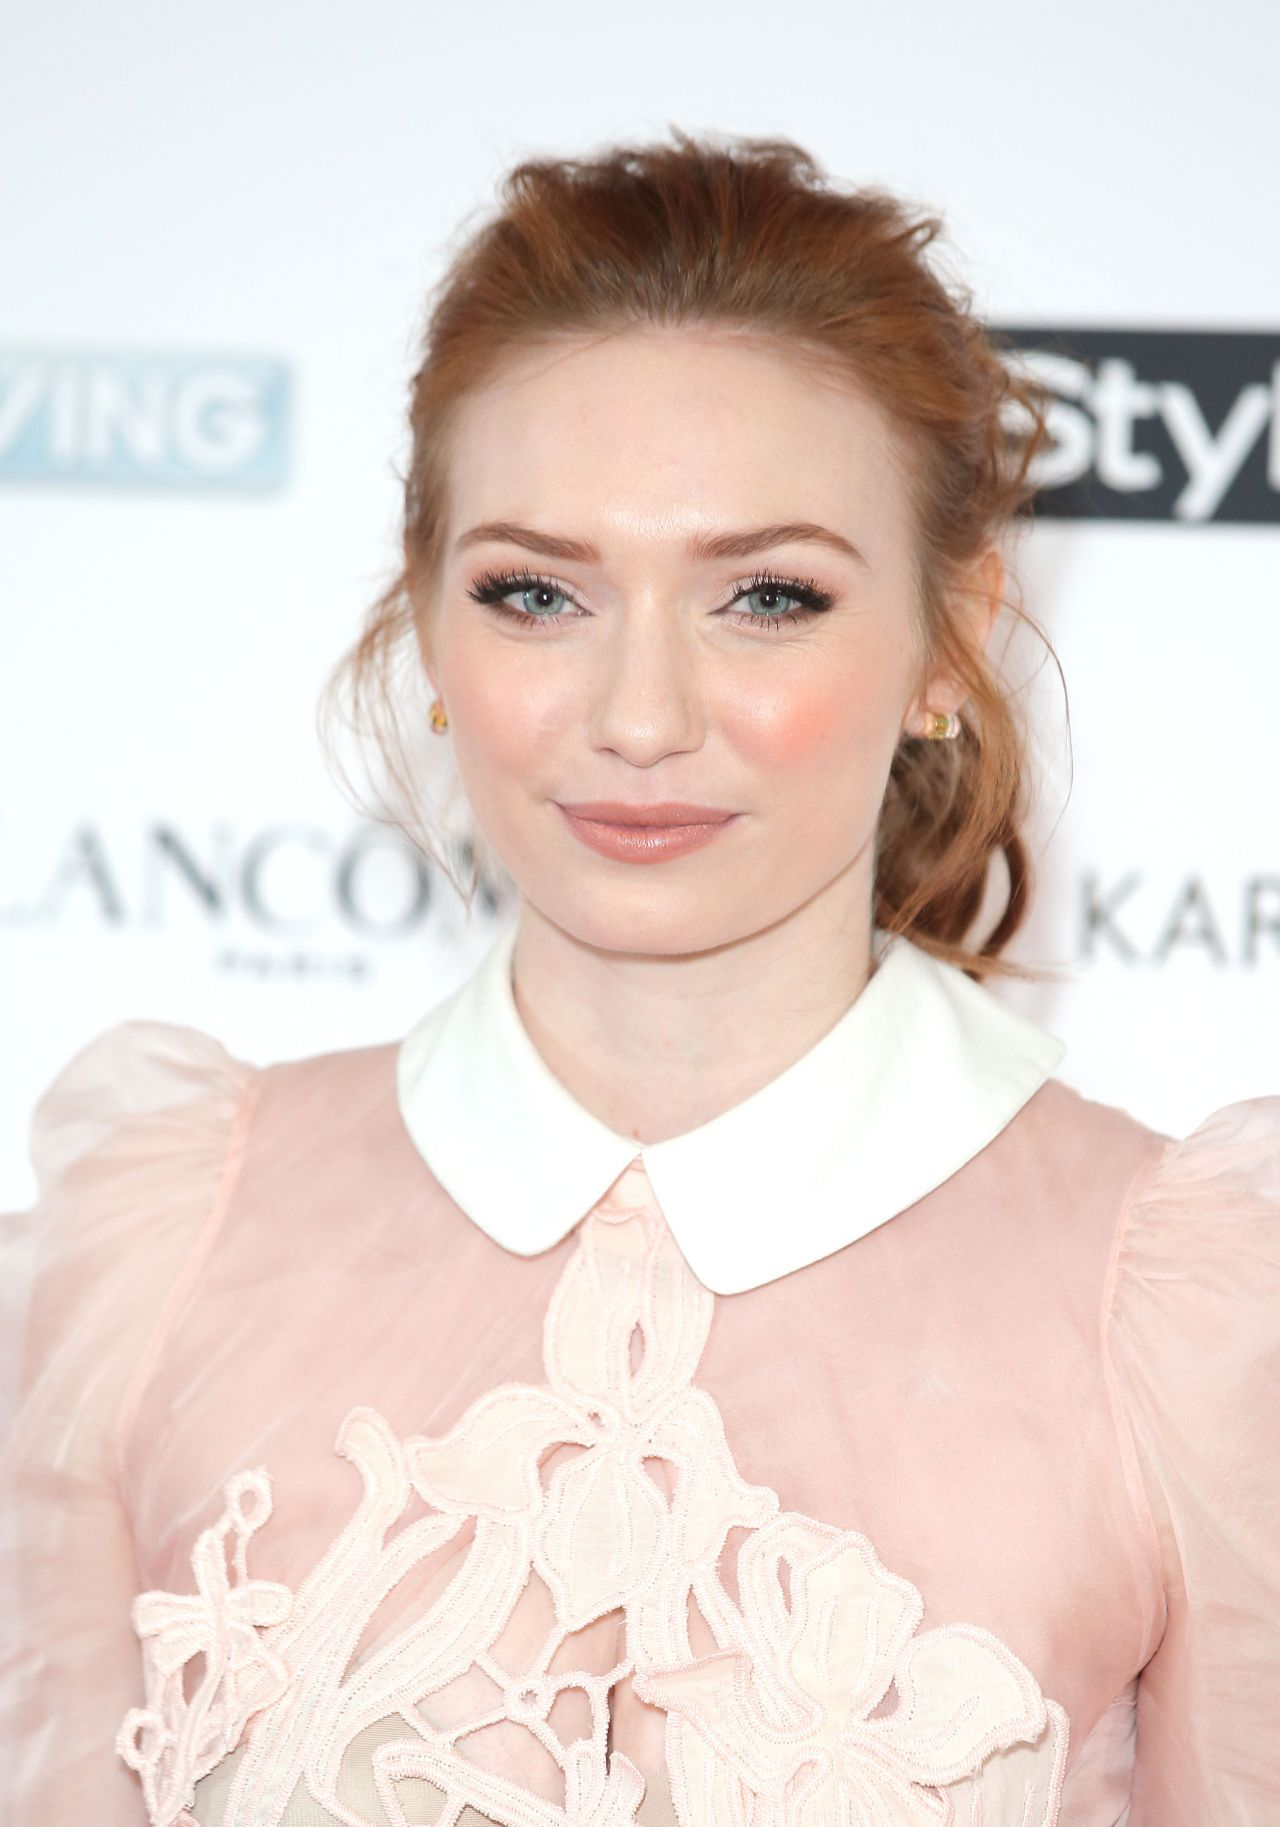 http://celebmafia.com/wp-content/uploads/2015/02/eleanor-tomlinson-ee-and-instyle-pre-bafta-2015-party-in-los-angeles_2.jpg